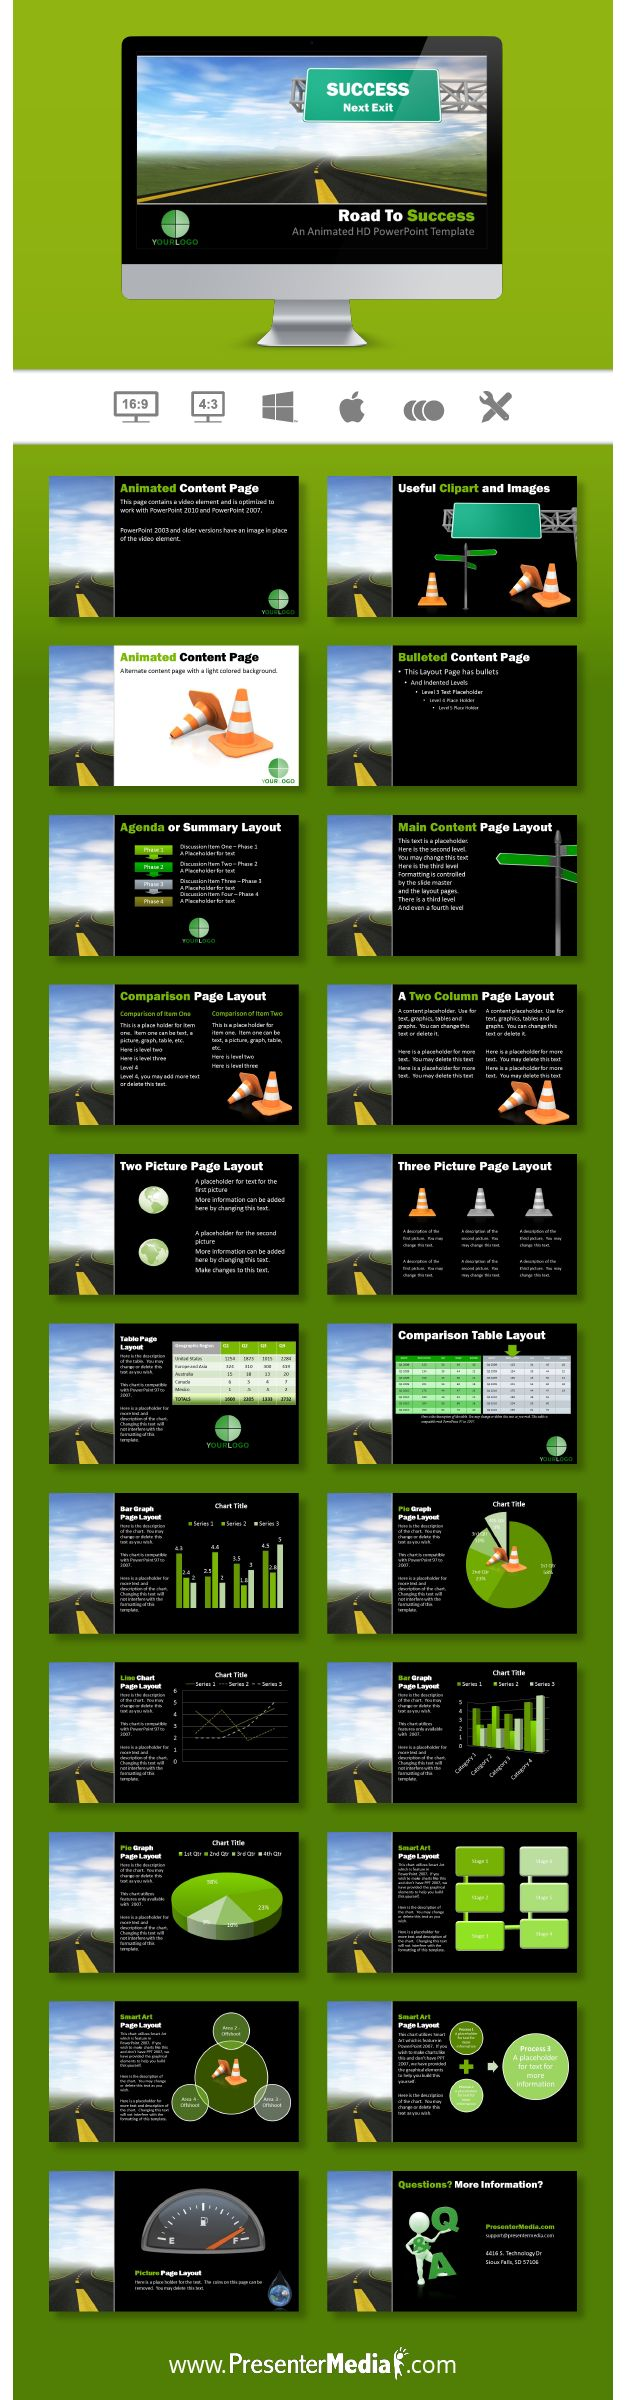 Road to Success Template #PowerPoint #Success http://bit.ly/2blZlaQ